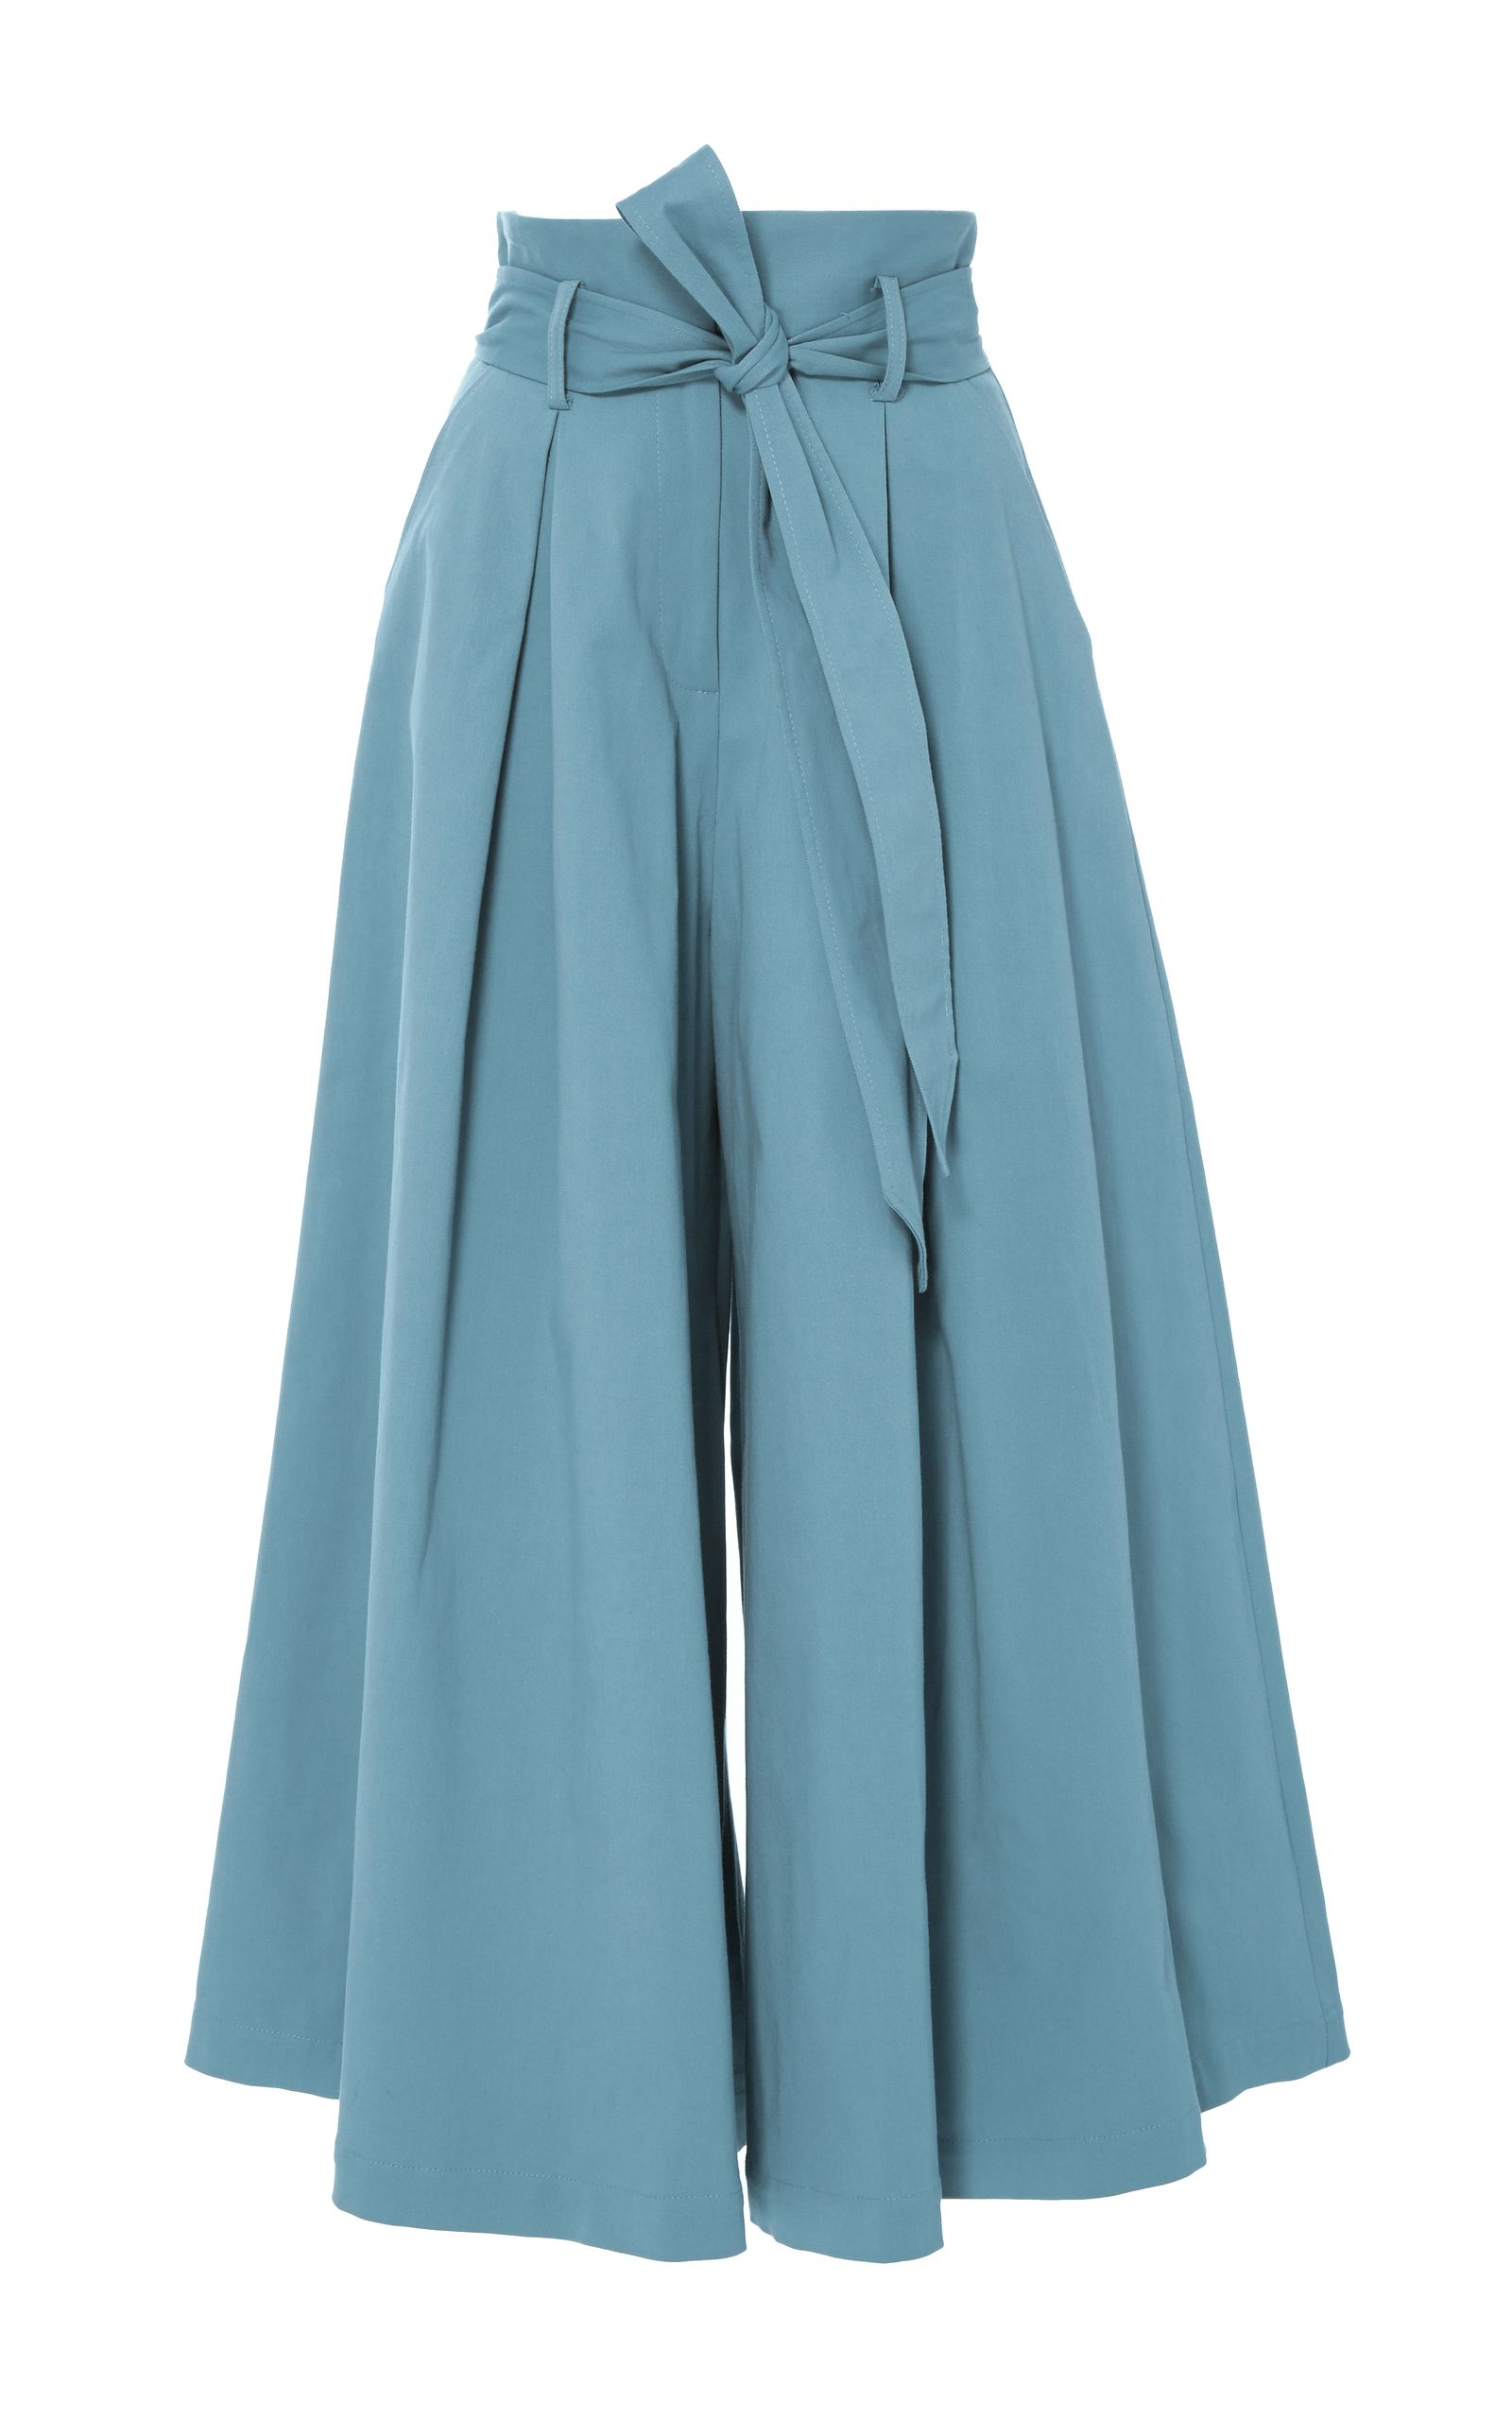 Photo of Blueberry Tailored Ruffle Culottes by Temperley London | Moda Operandi